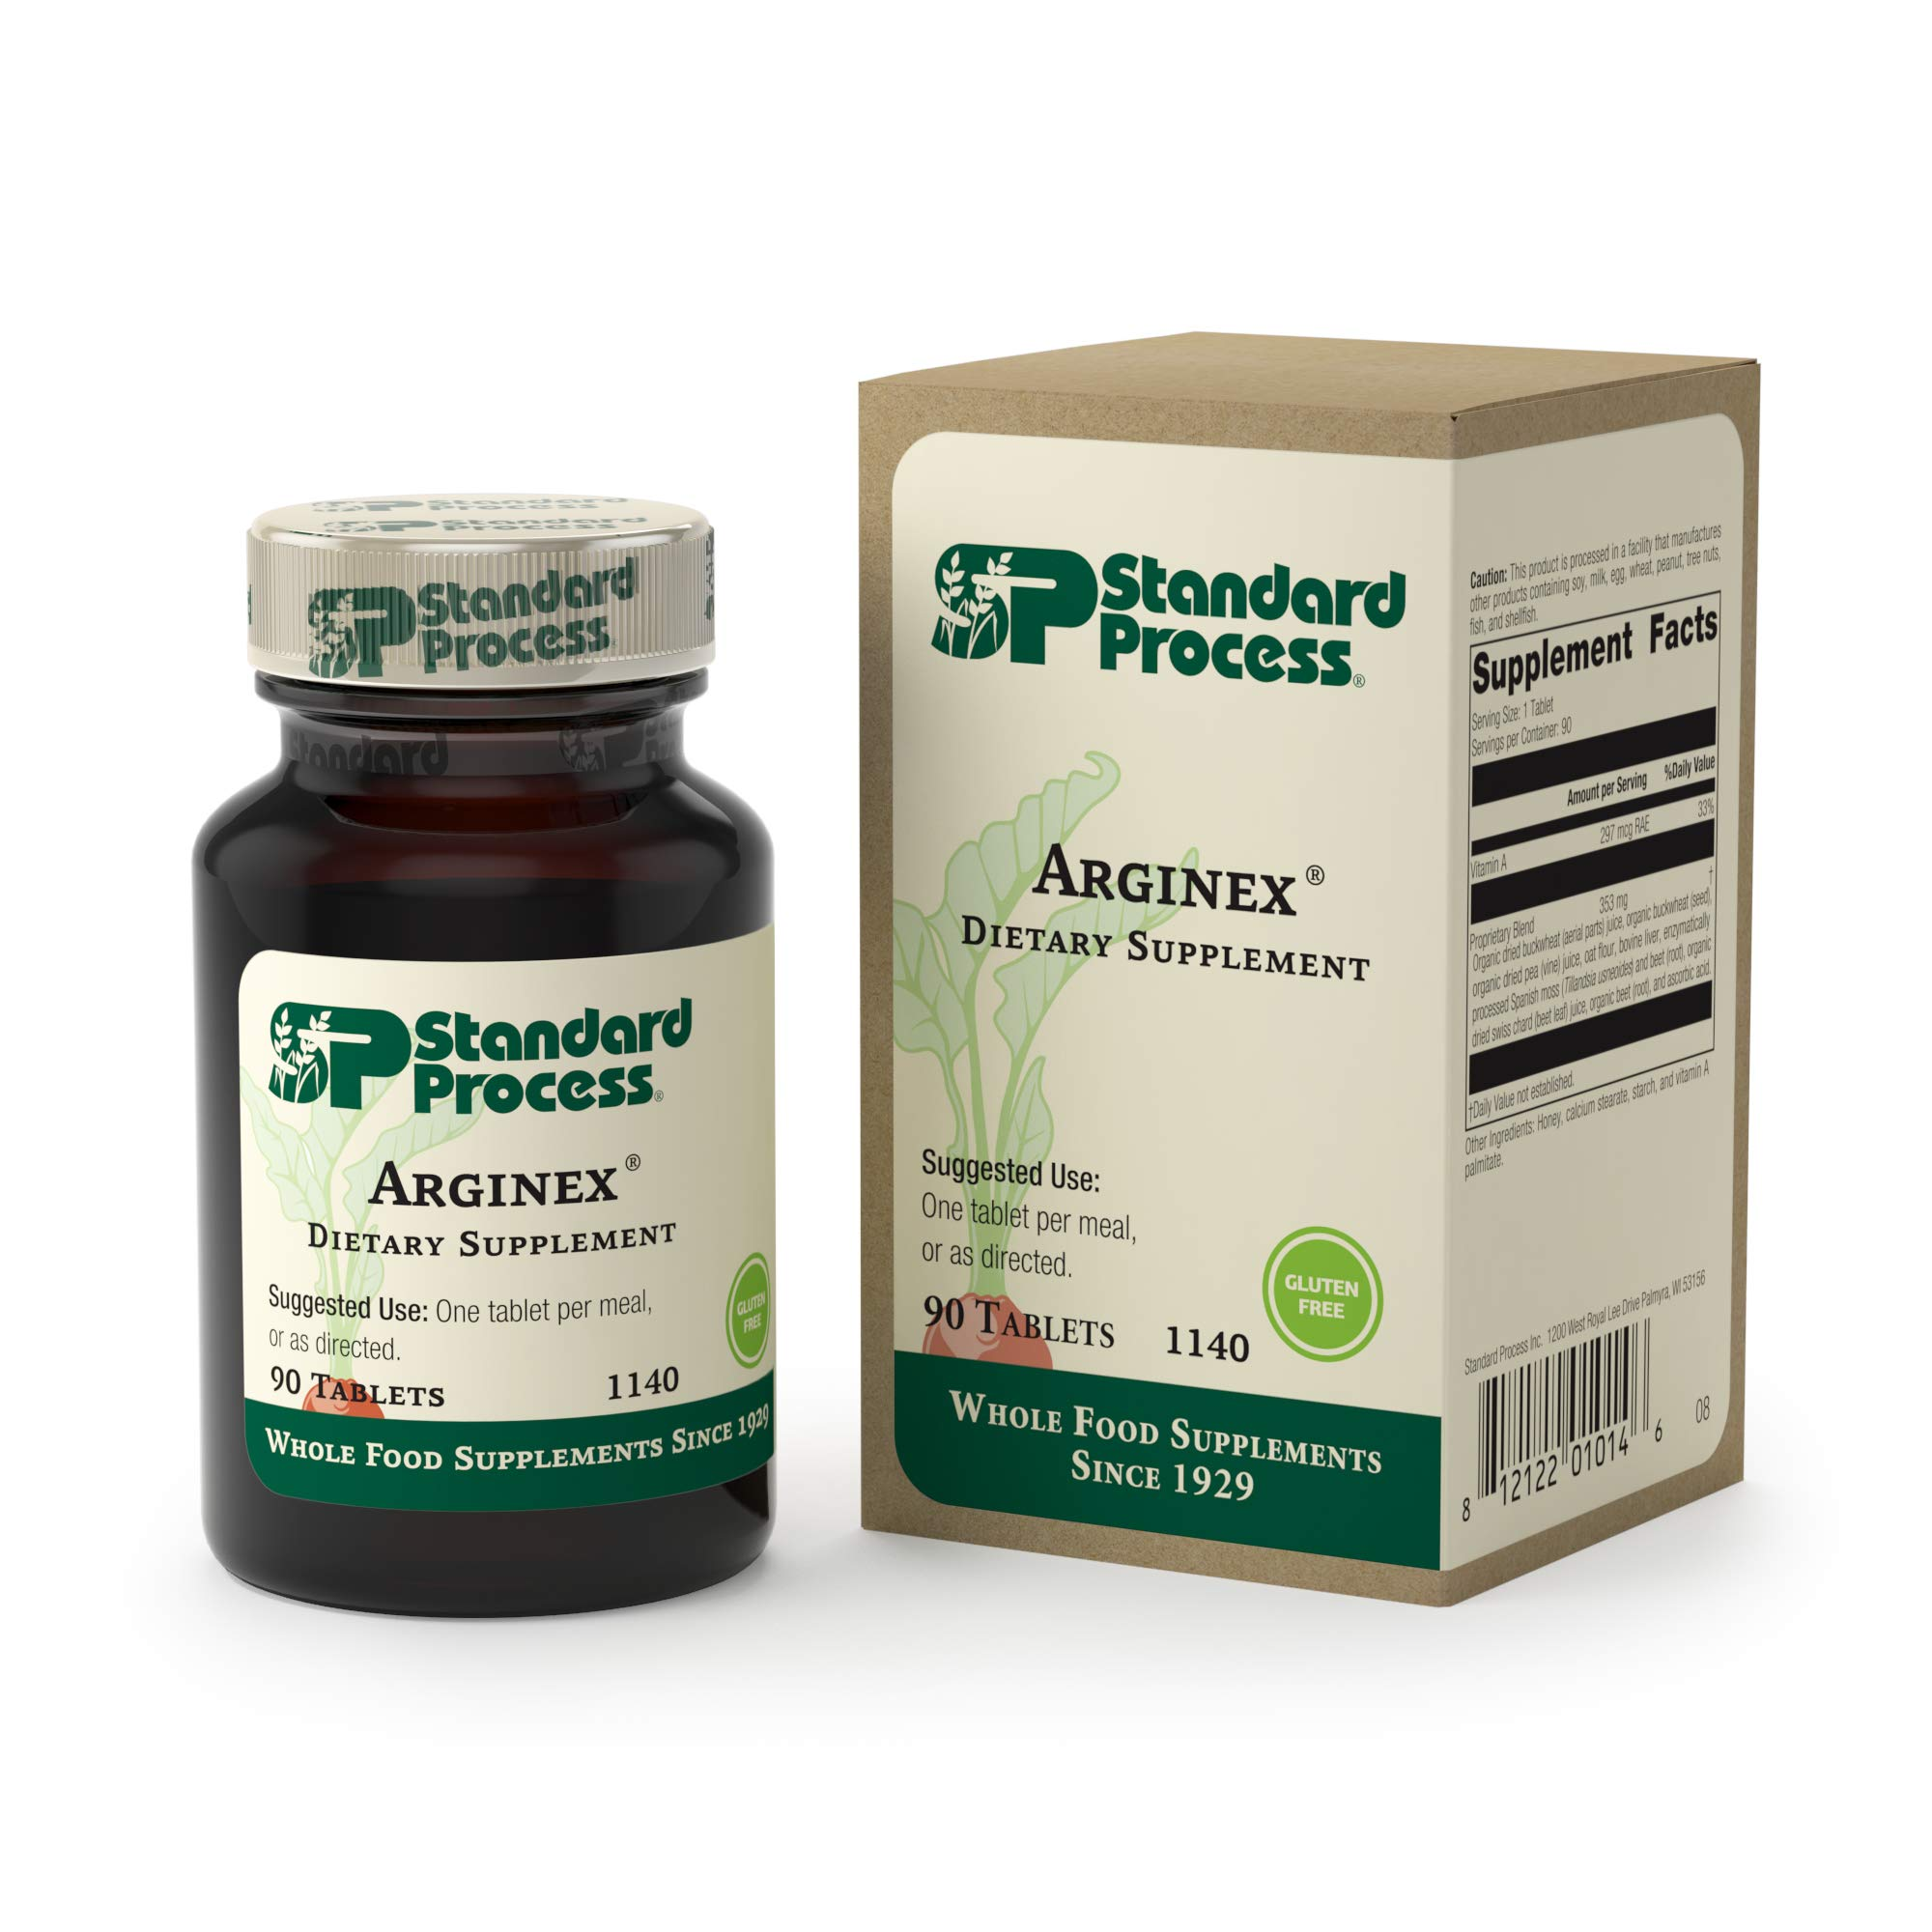 Standard Process - Arginex - 990 IU Vitamin A, Gluten Free Liver and Kidney Supplement, Promotes Healthy Blood Vessels, Liver Health, and Kidney - 90 Tablets by Standard Process